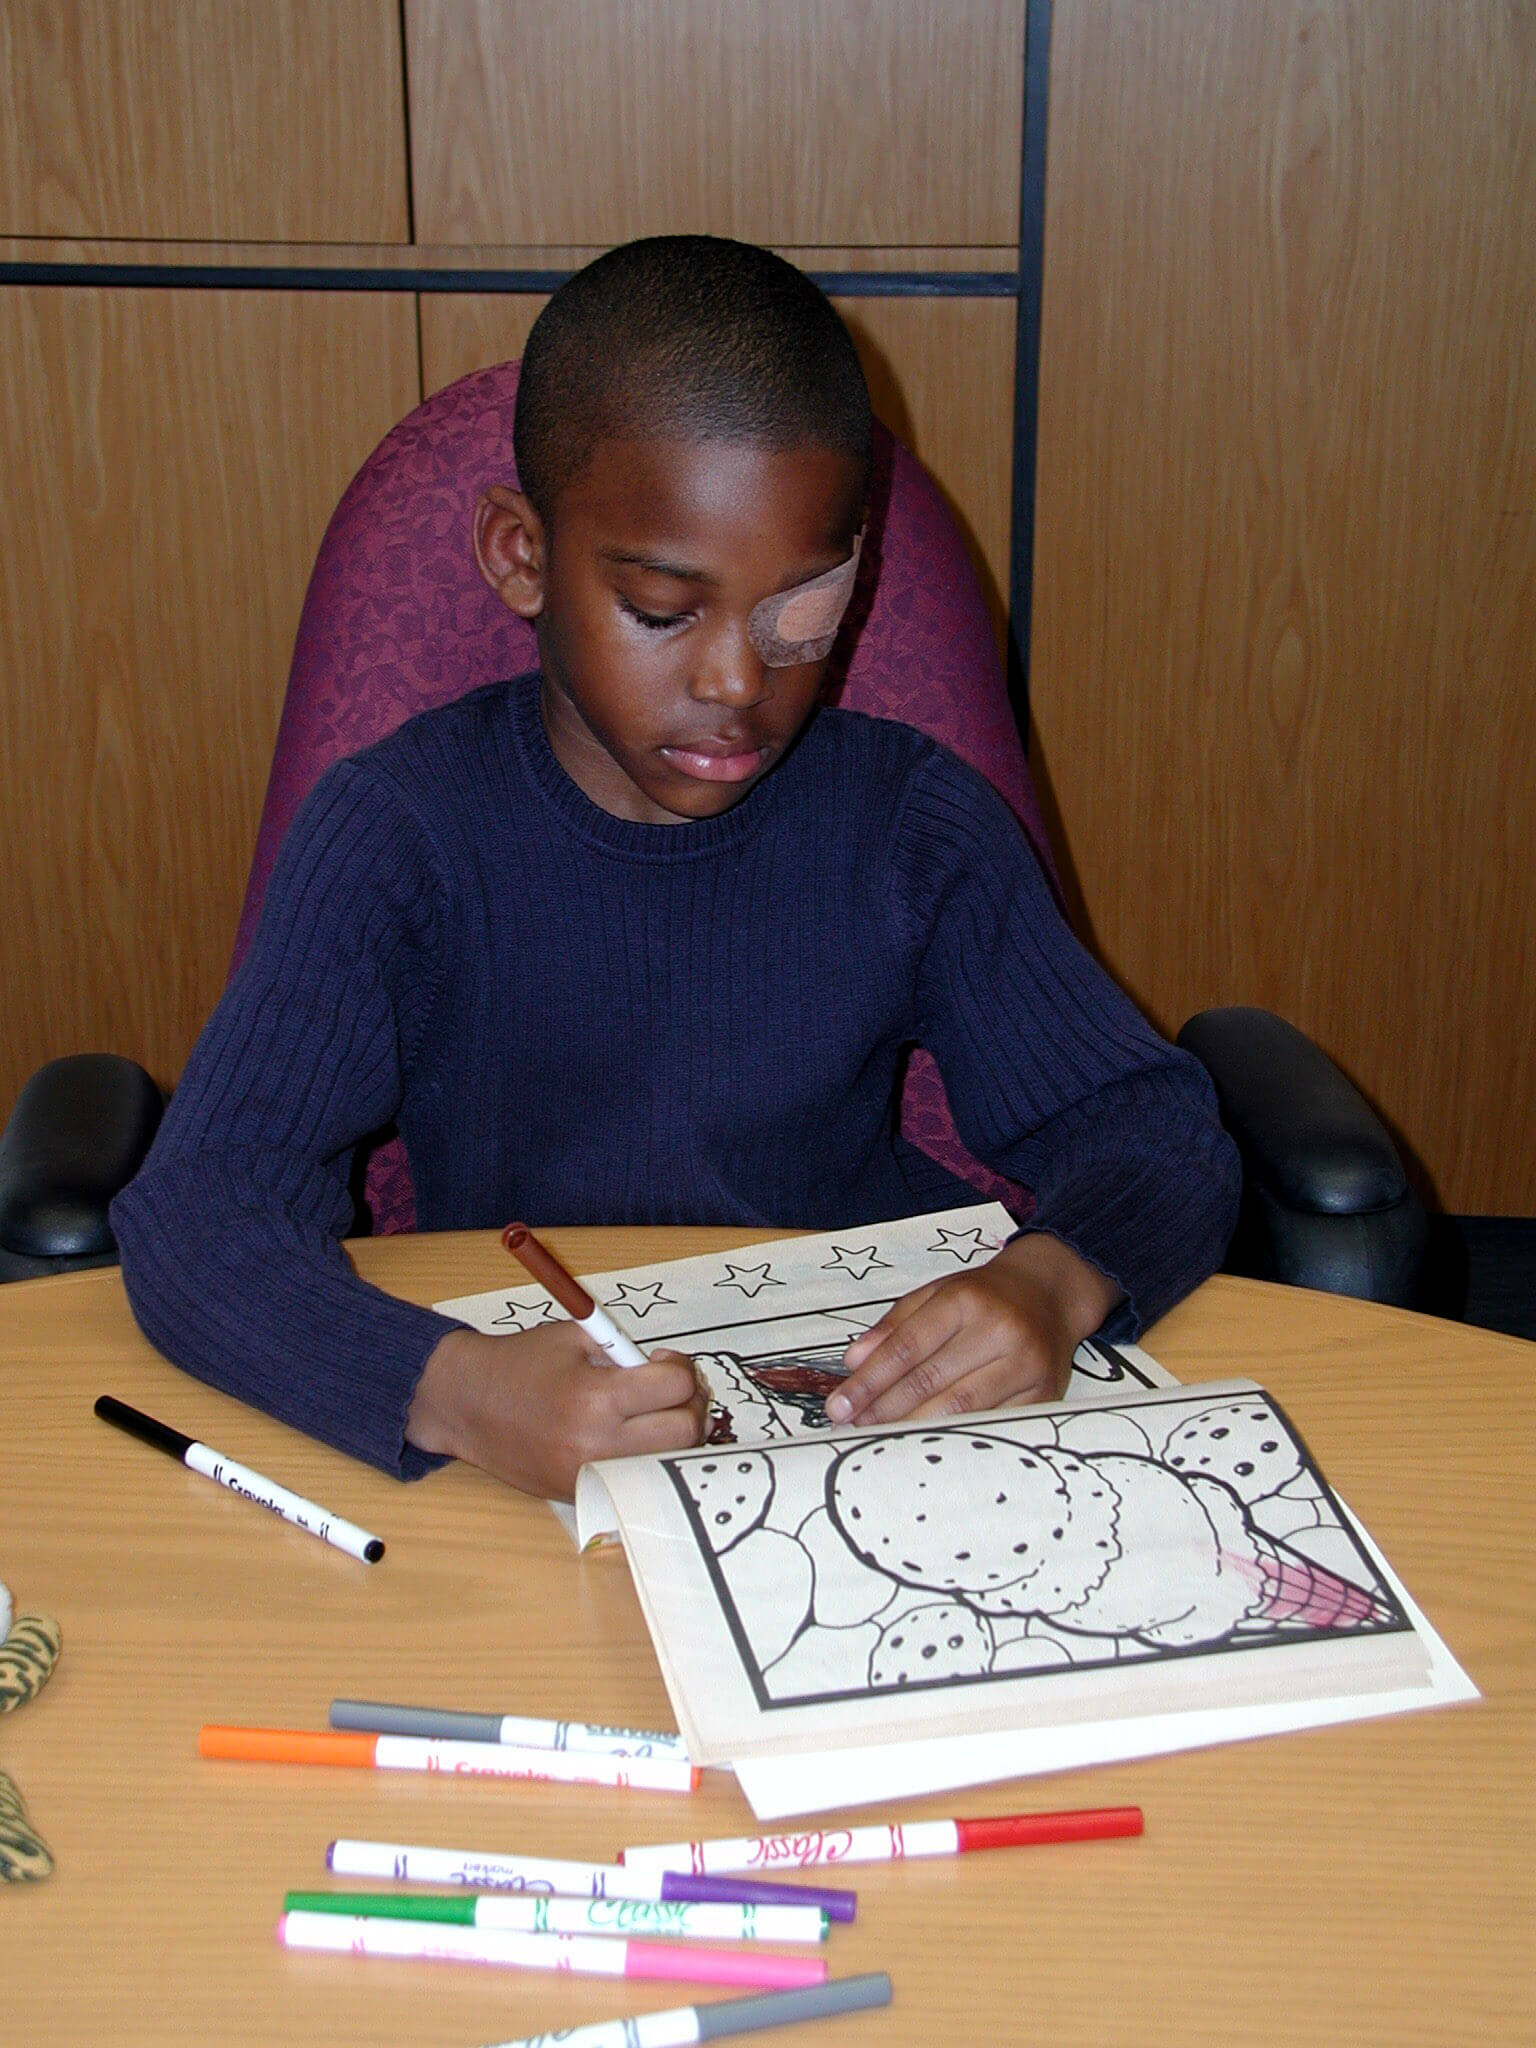 A child wearing an eyepatch while colouring in.